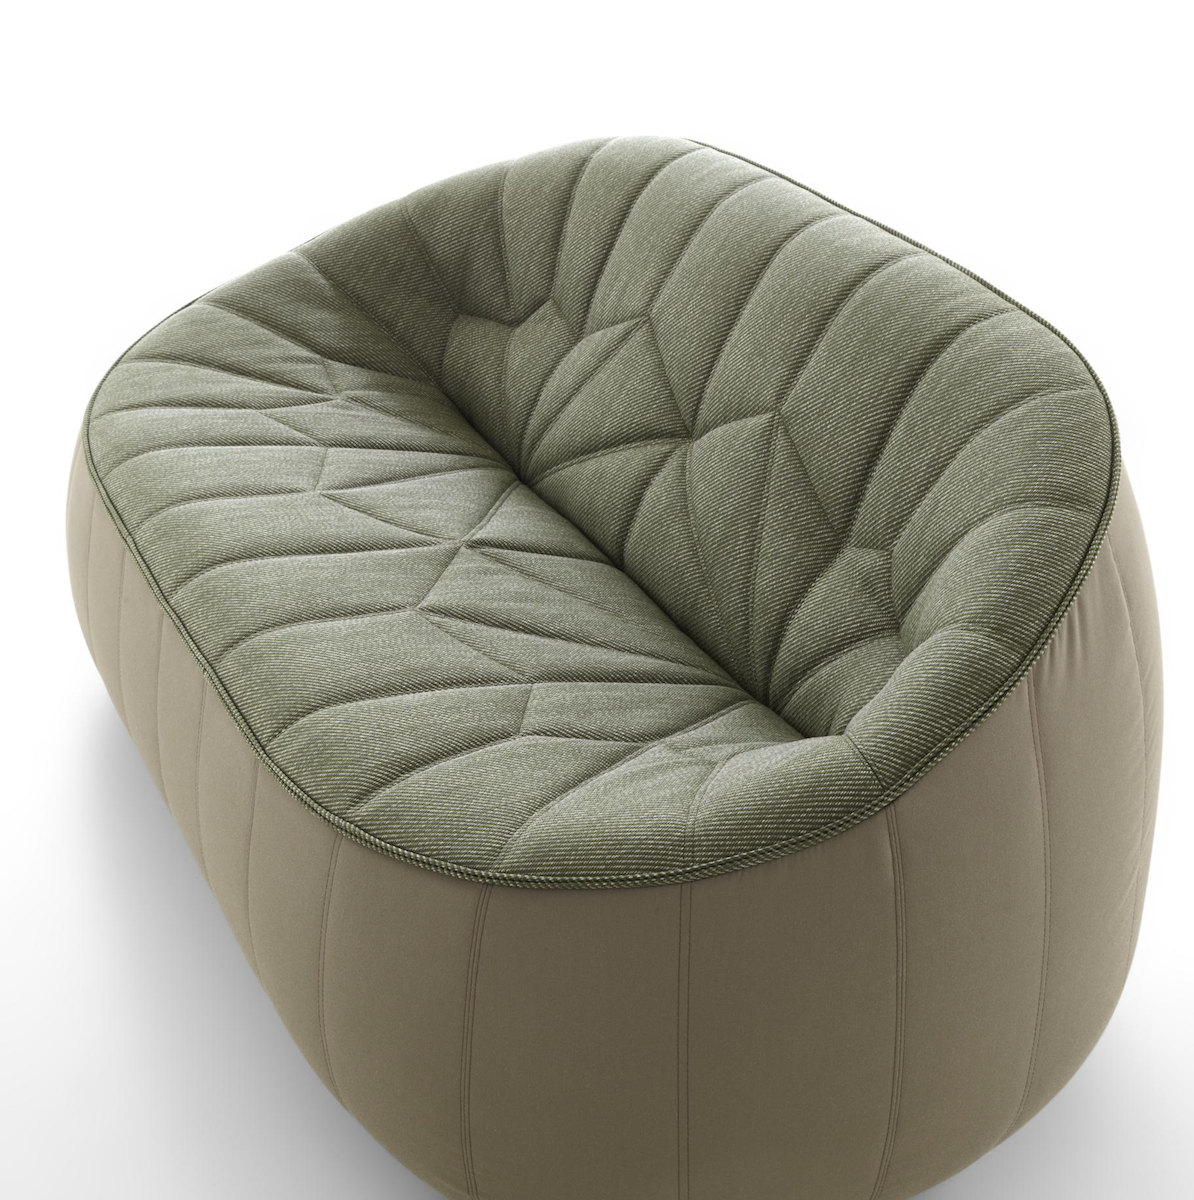 Ottoman chair by Noé Duchaufour-Lawrance, Bjorn Design